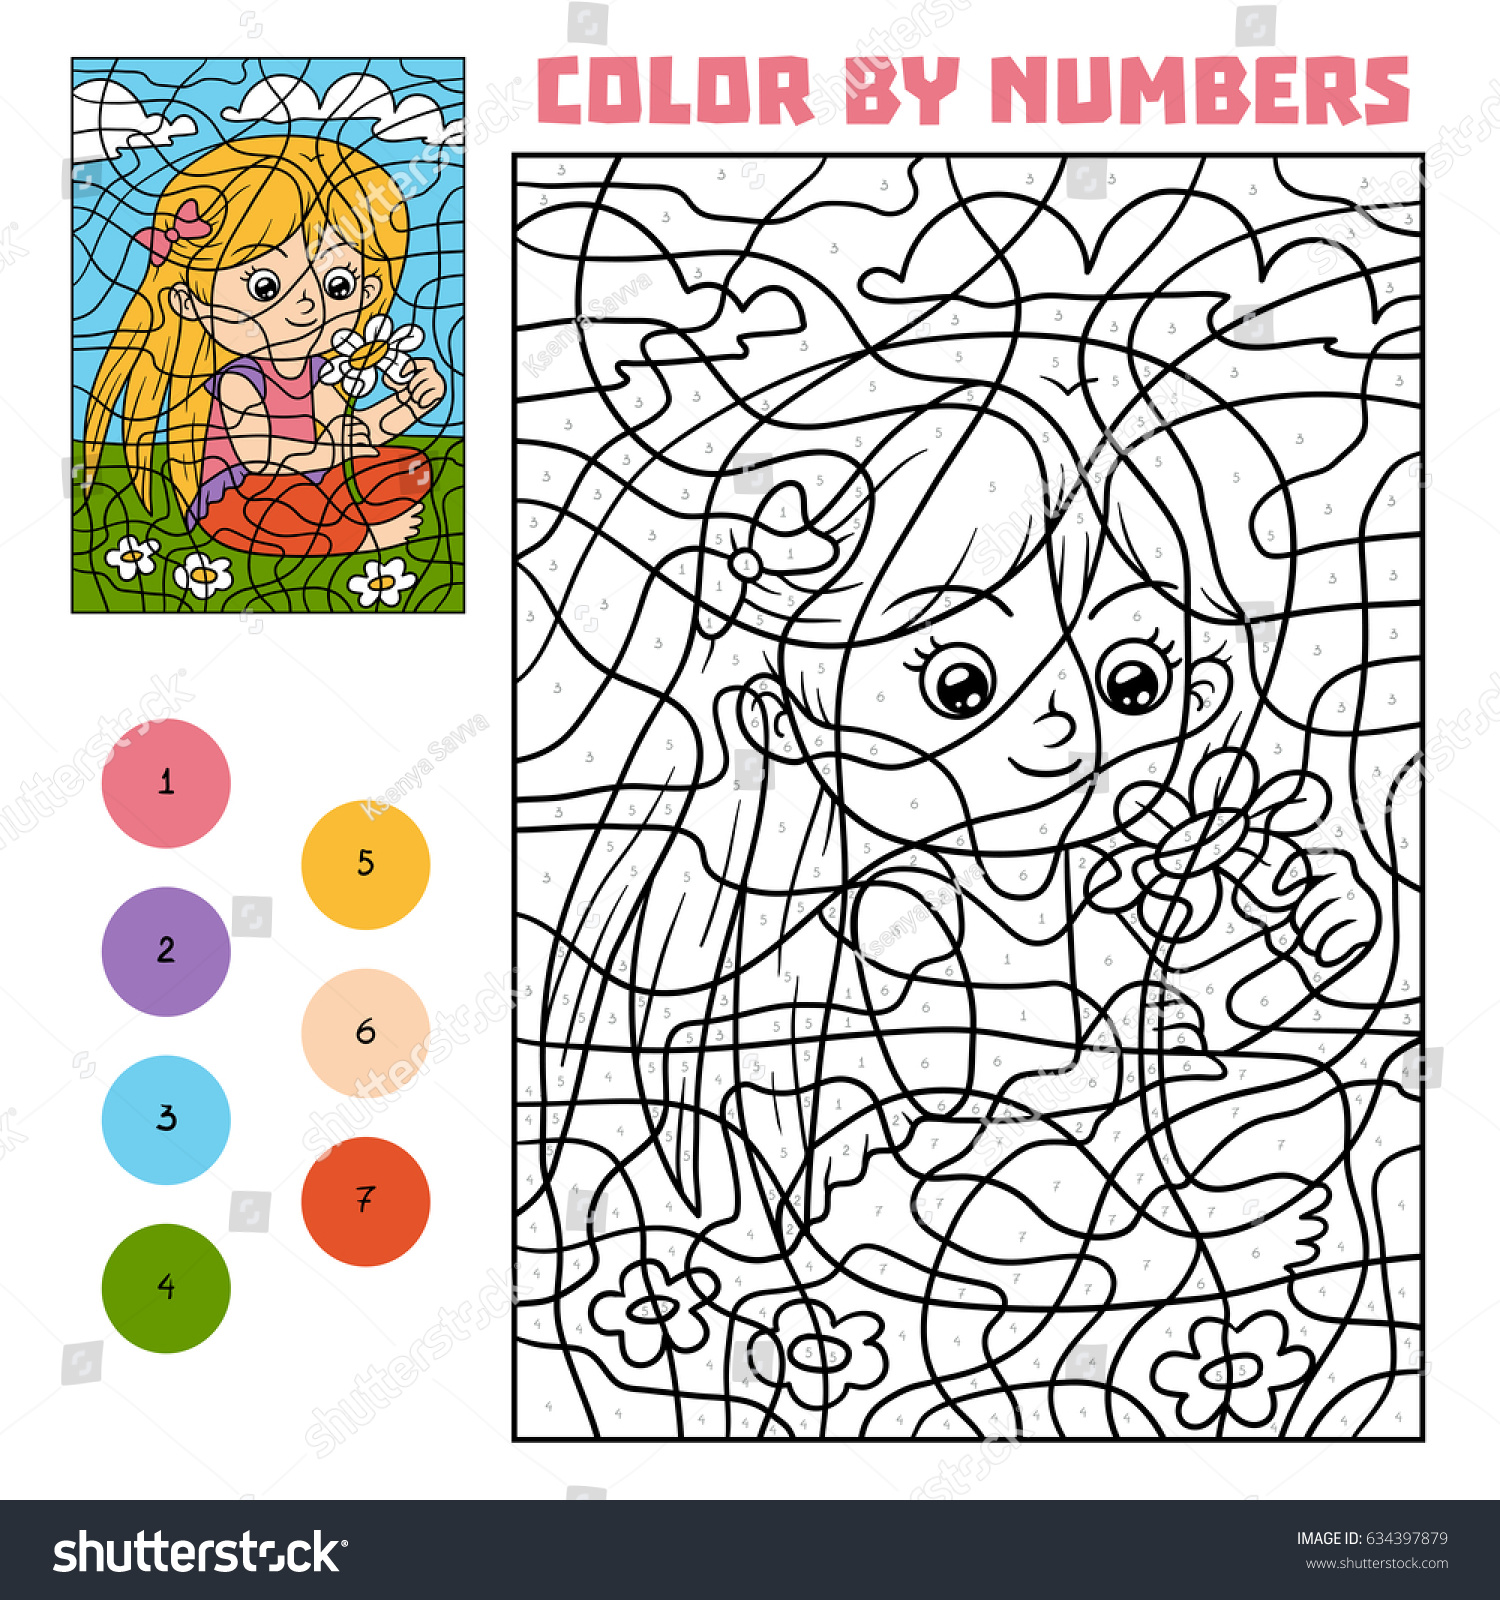 color by number education game children stock vector 634397879